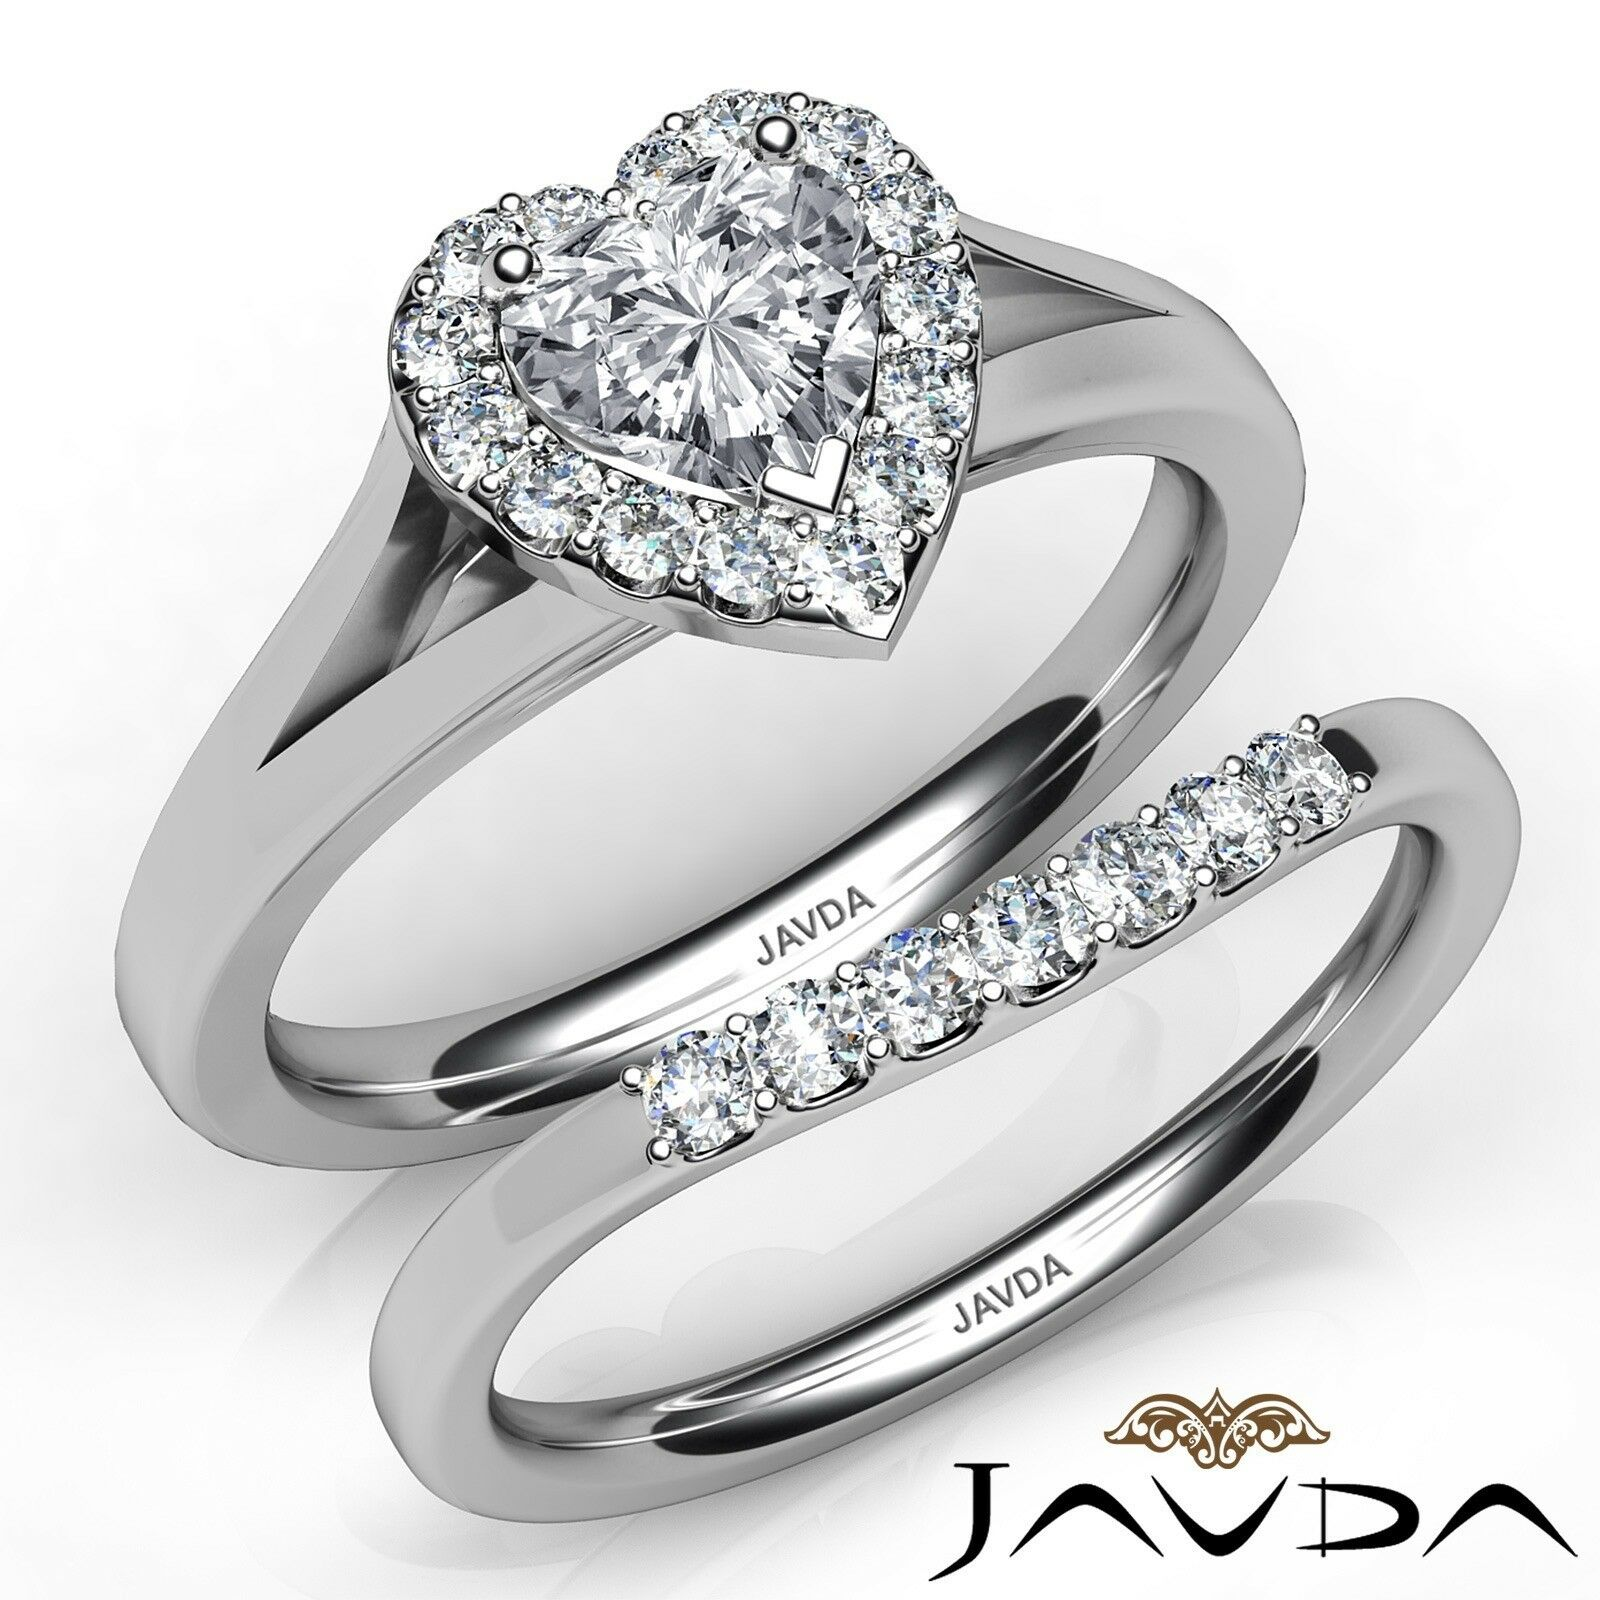 1.32ctw Pave Halo Bridal Set Heart Diamond Engagement Ring GIA F-VS2 White Gold